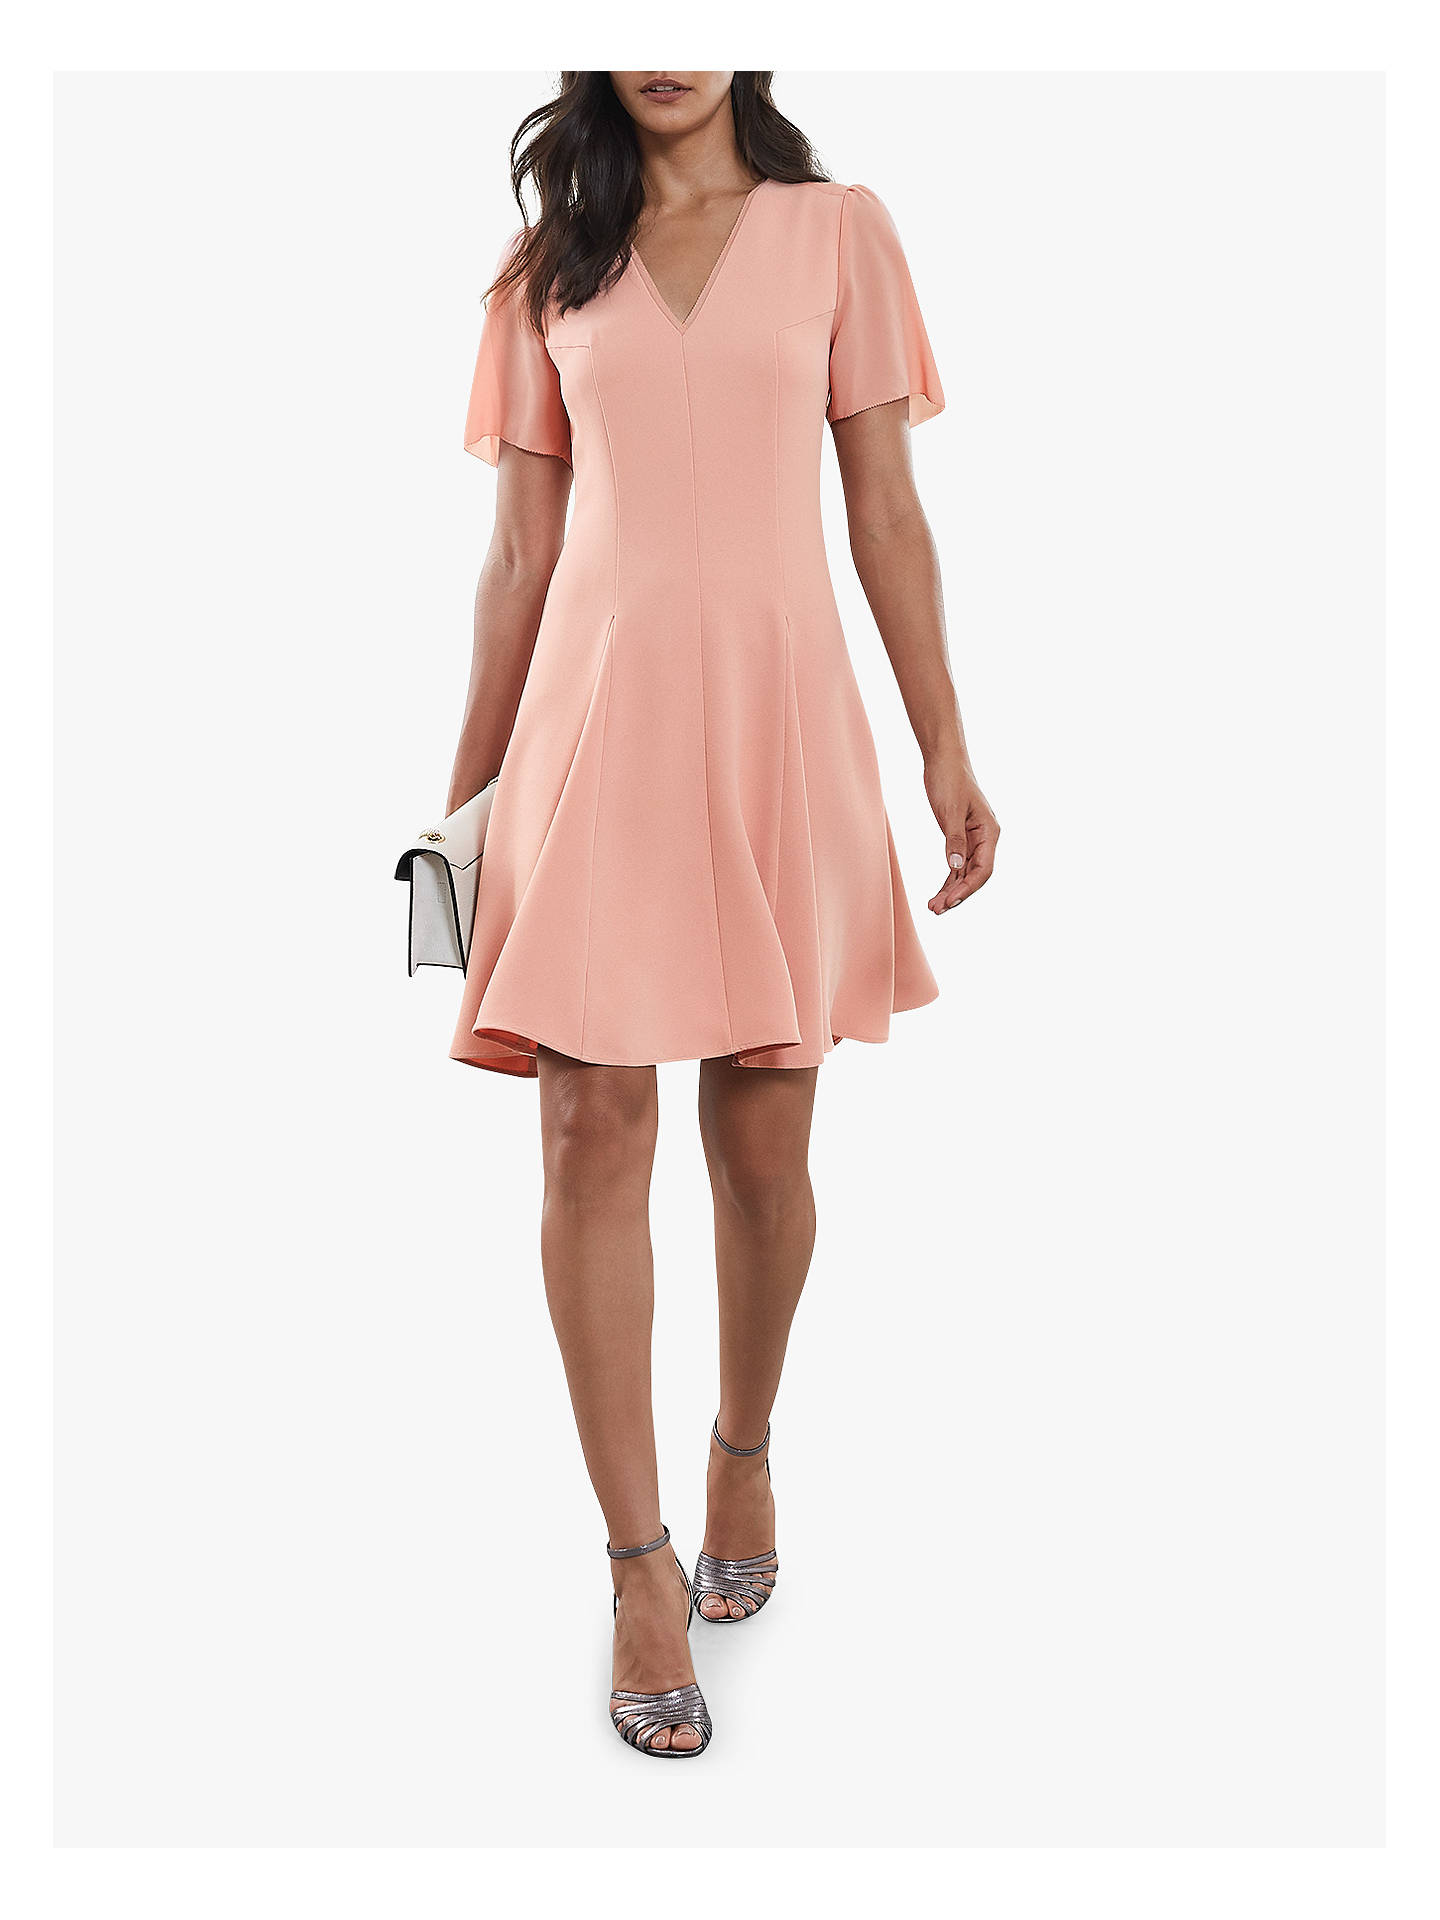 Buy Reiss Seamed Sleeve Dress, Pale Pink, 6 Online at johnlewis.com